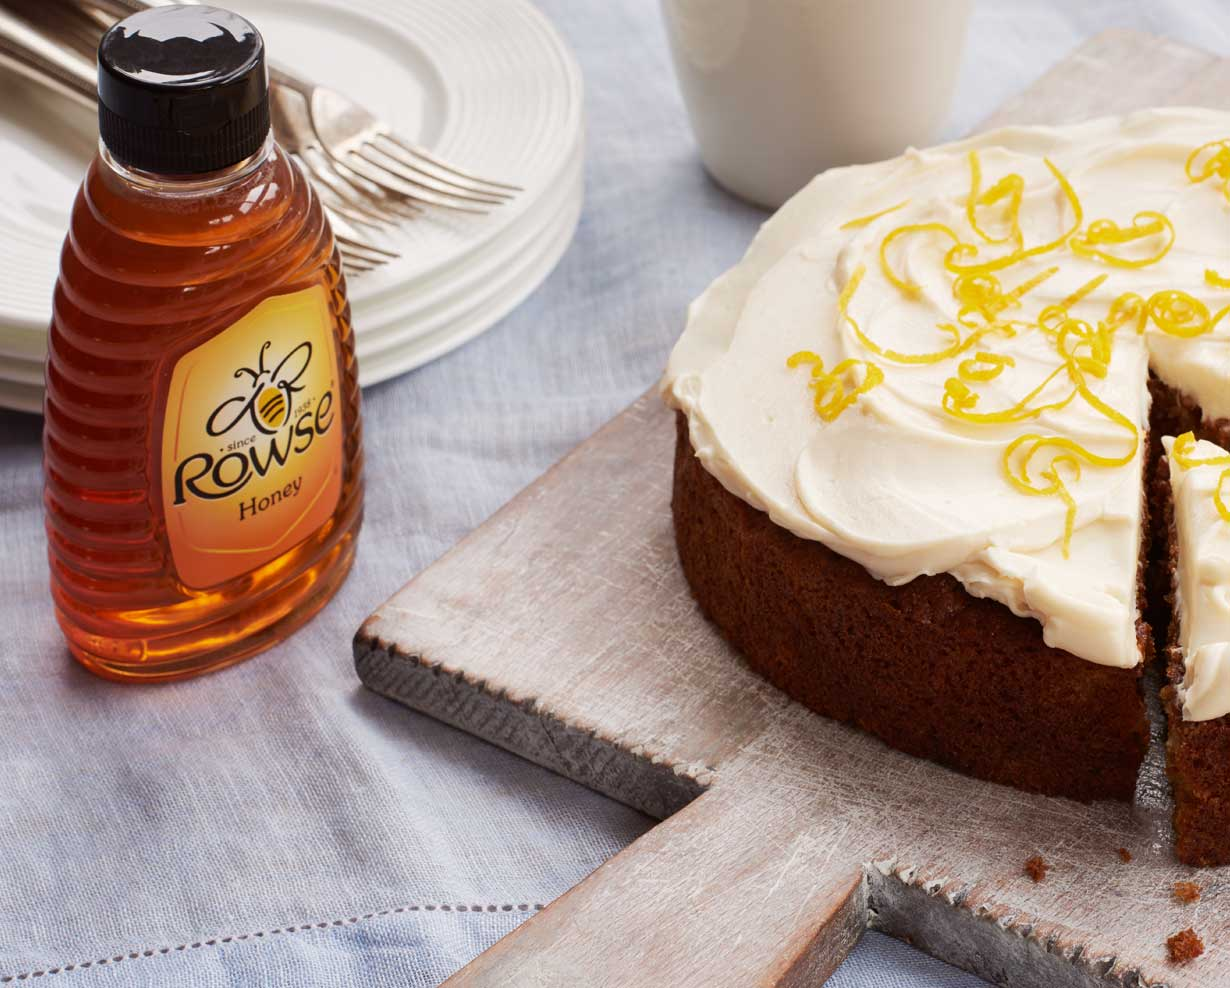 Rowse honey with cake